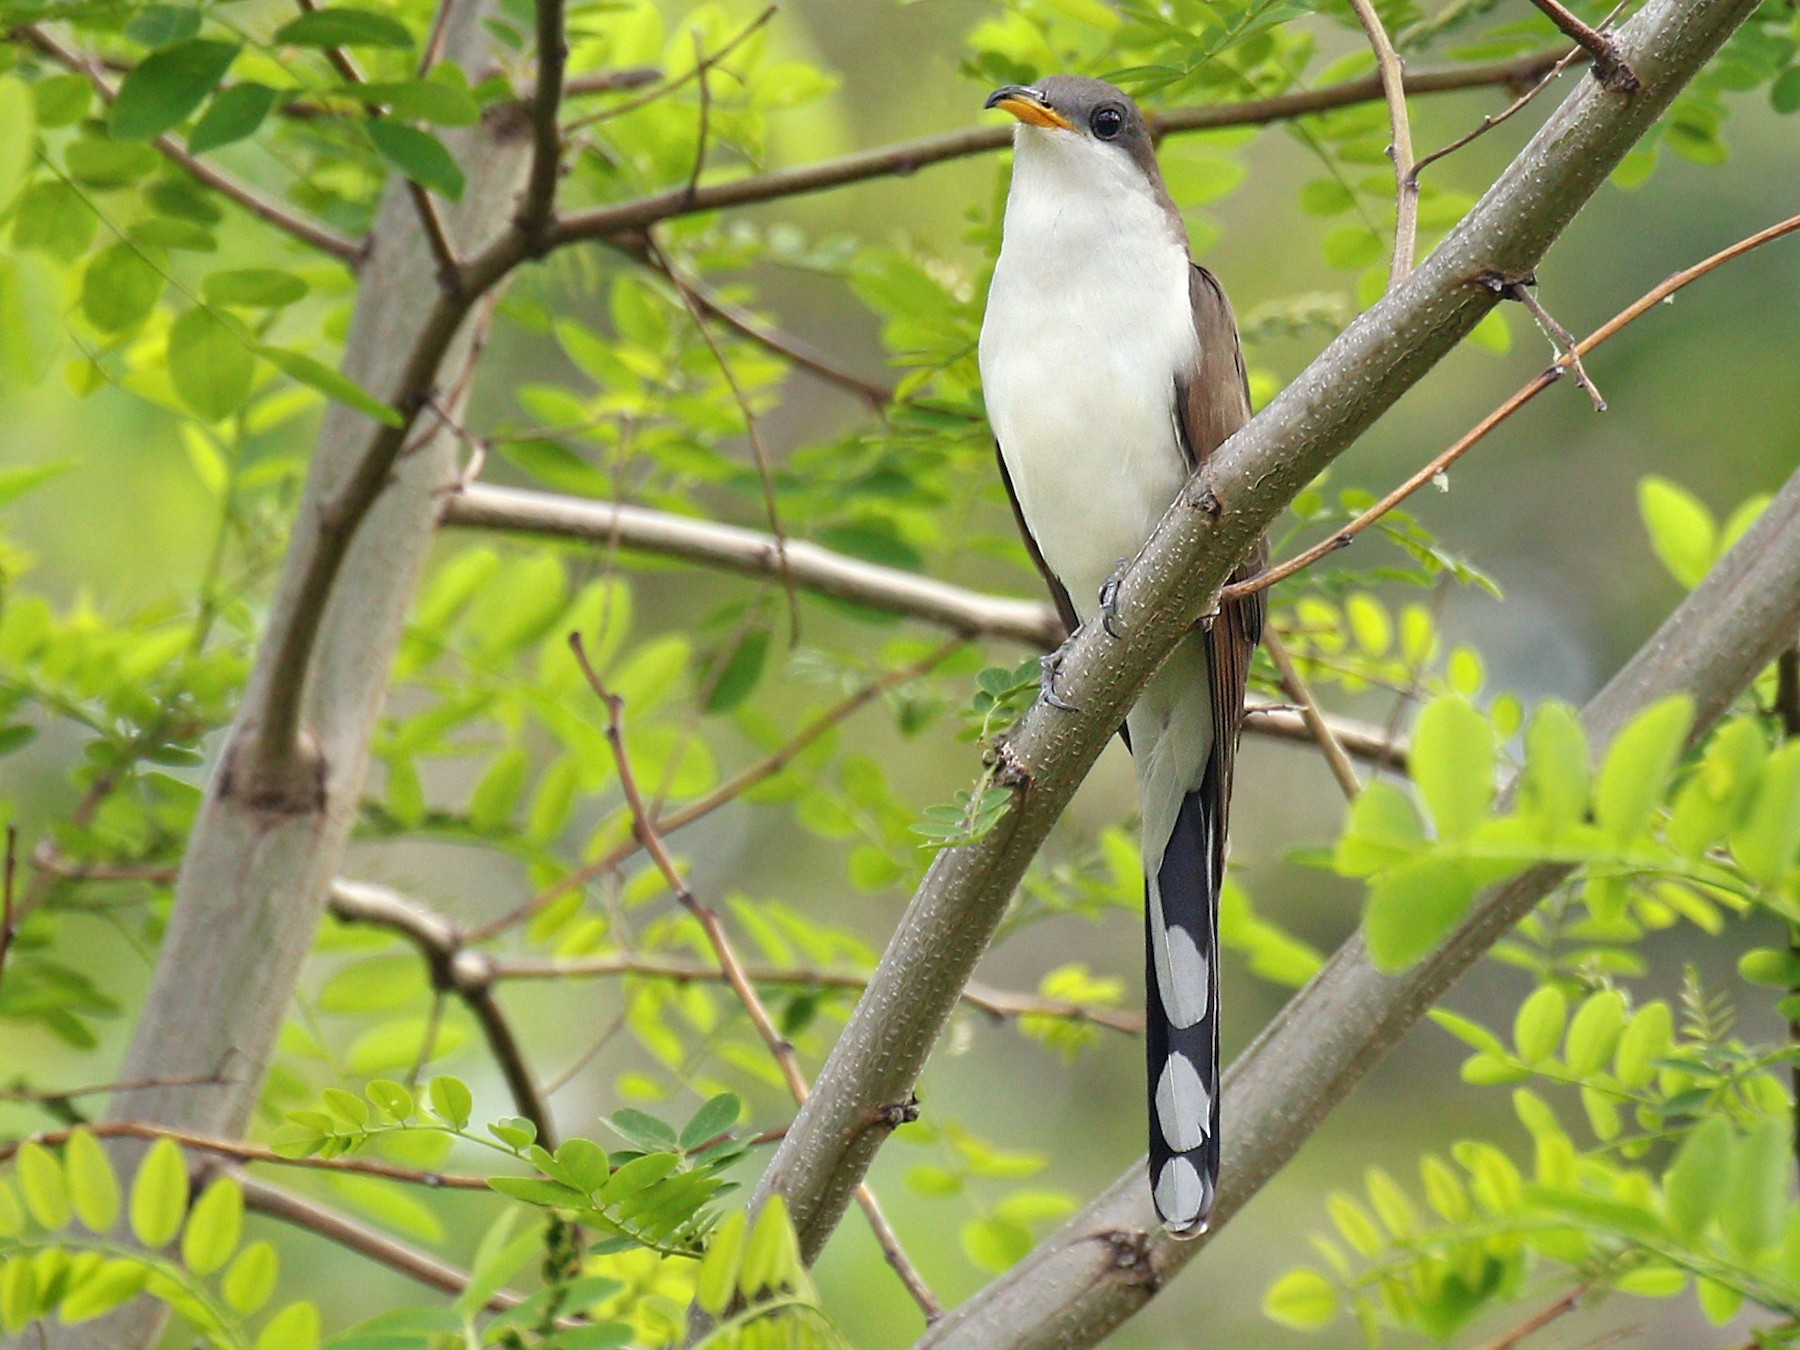 Yellow-billed Cuckoo - Ryan Schain